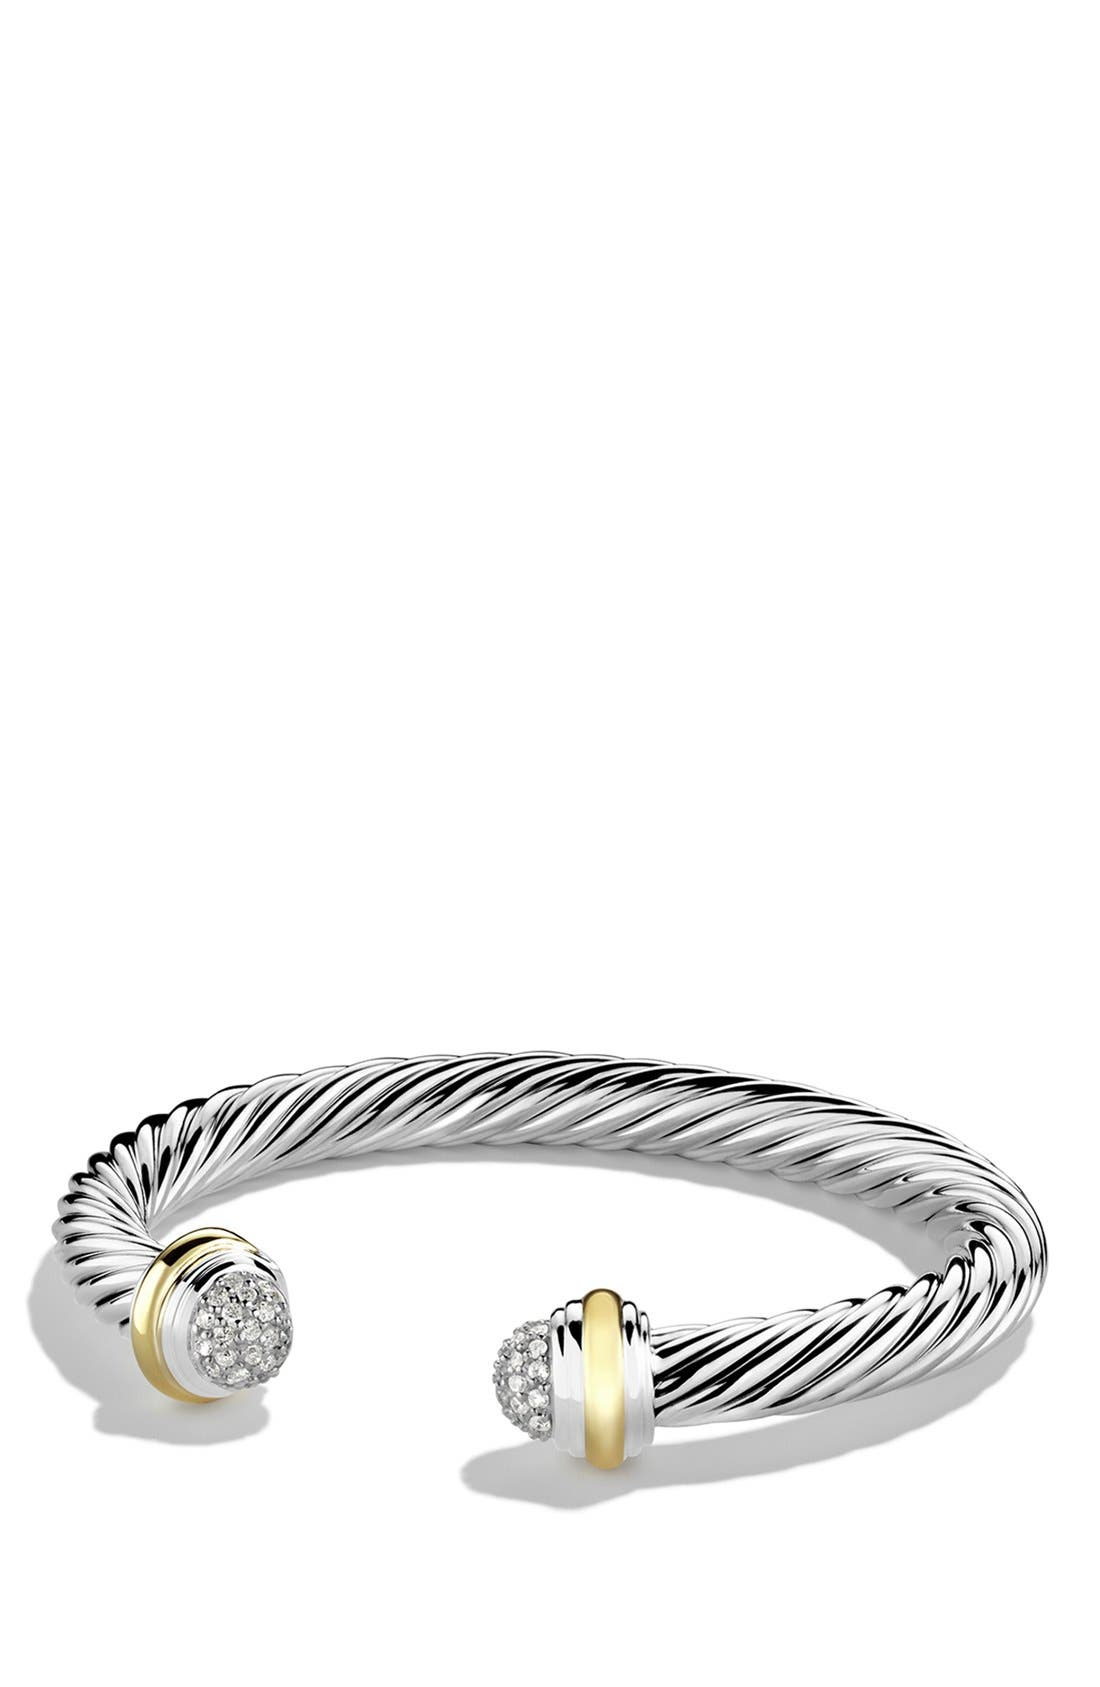 DAVID YURMAN 'Cable Classics' Bracelet with Diamonds and